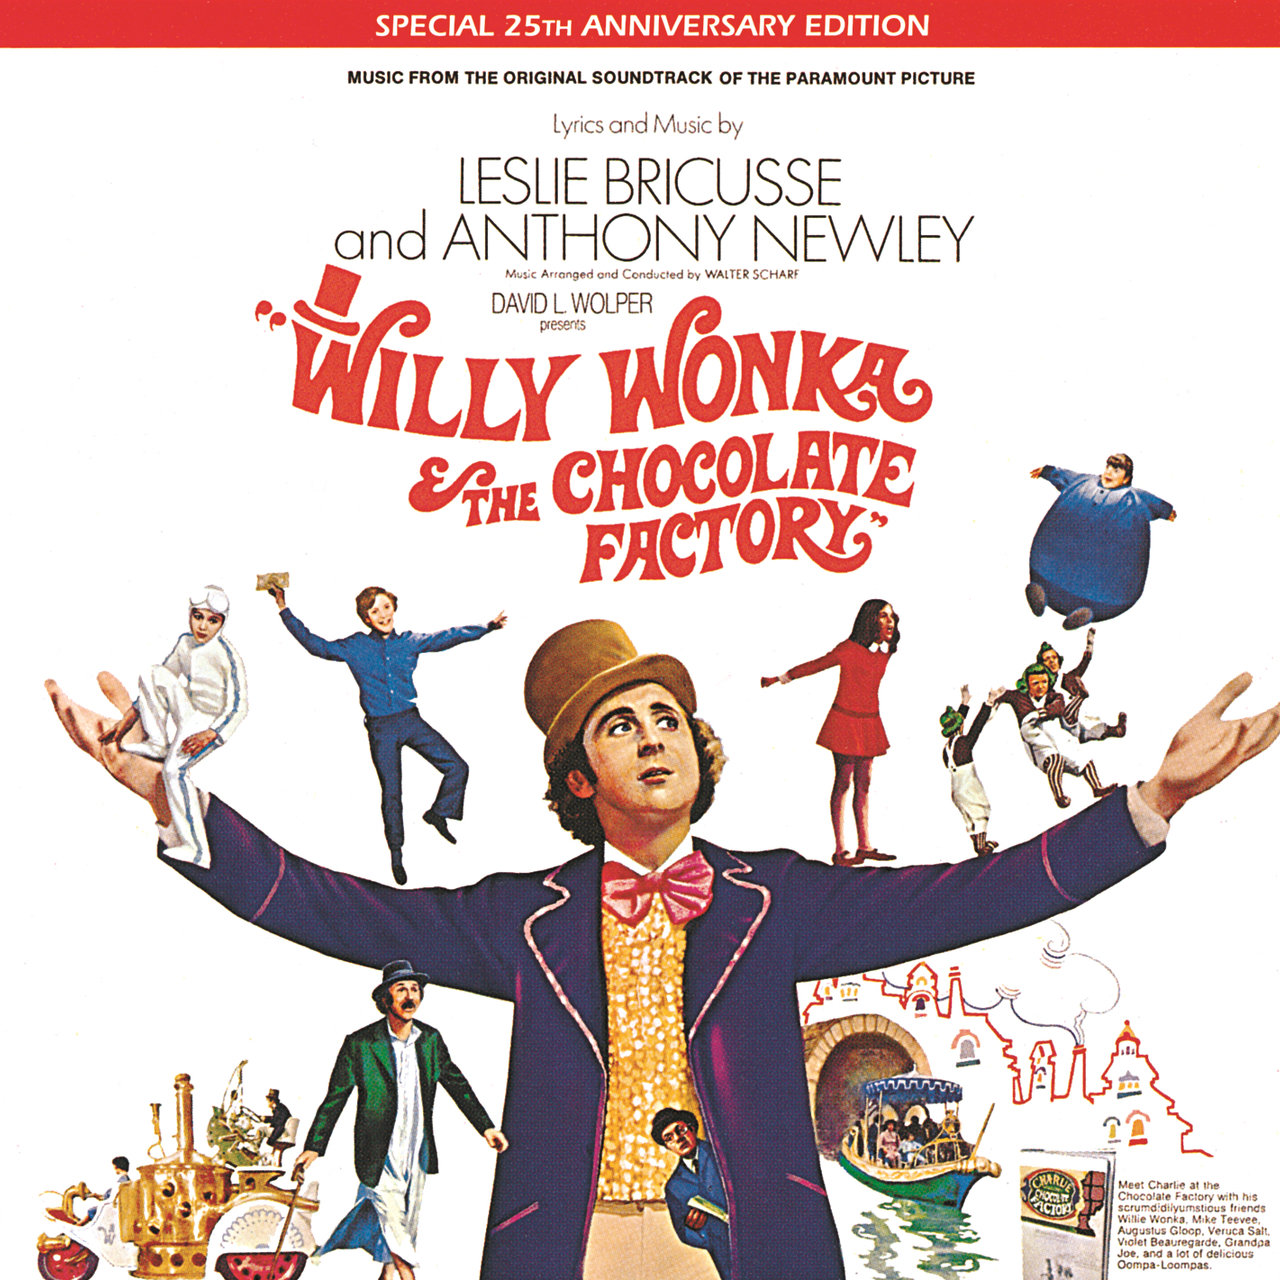 willy wonka the chocolate factory soundtrack various artists willy wonka the chocolate factory soundtrack various artists tidal